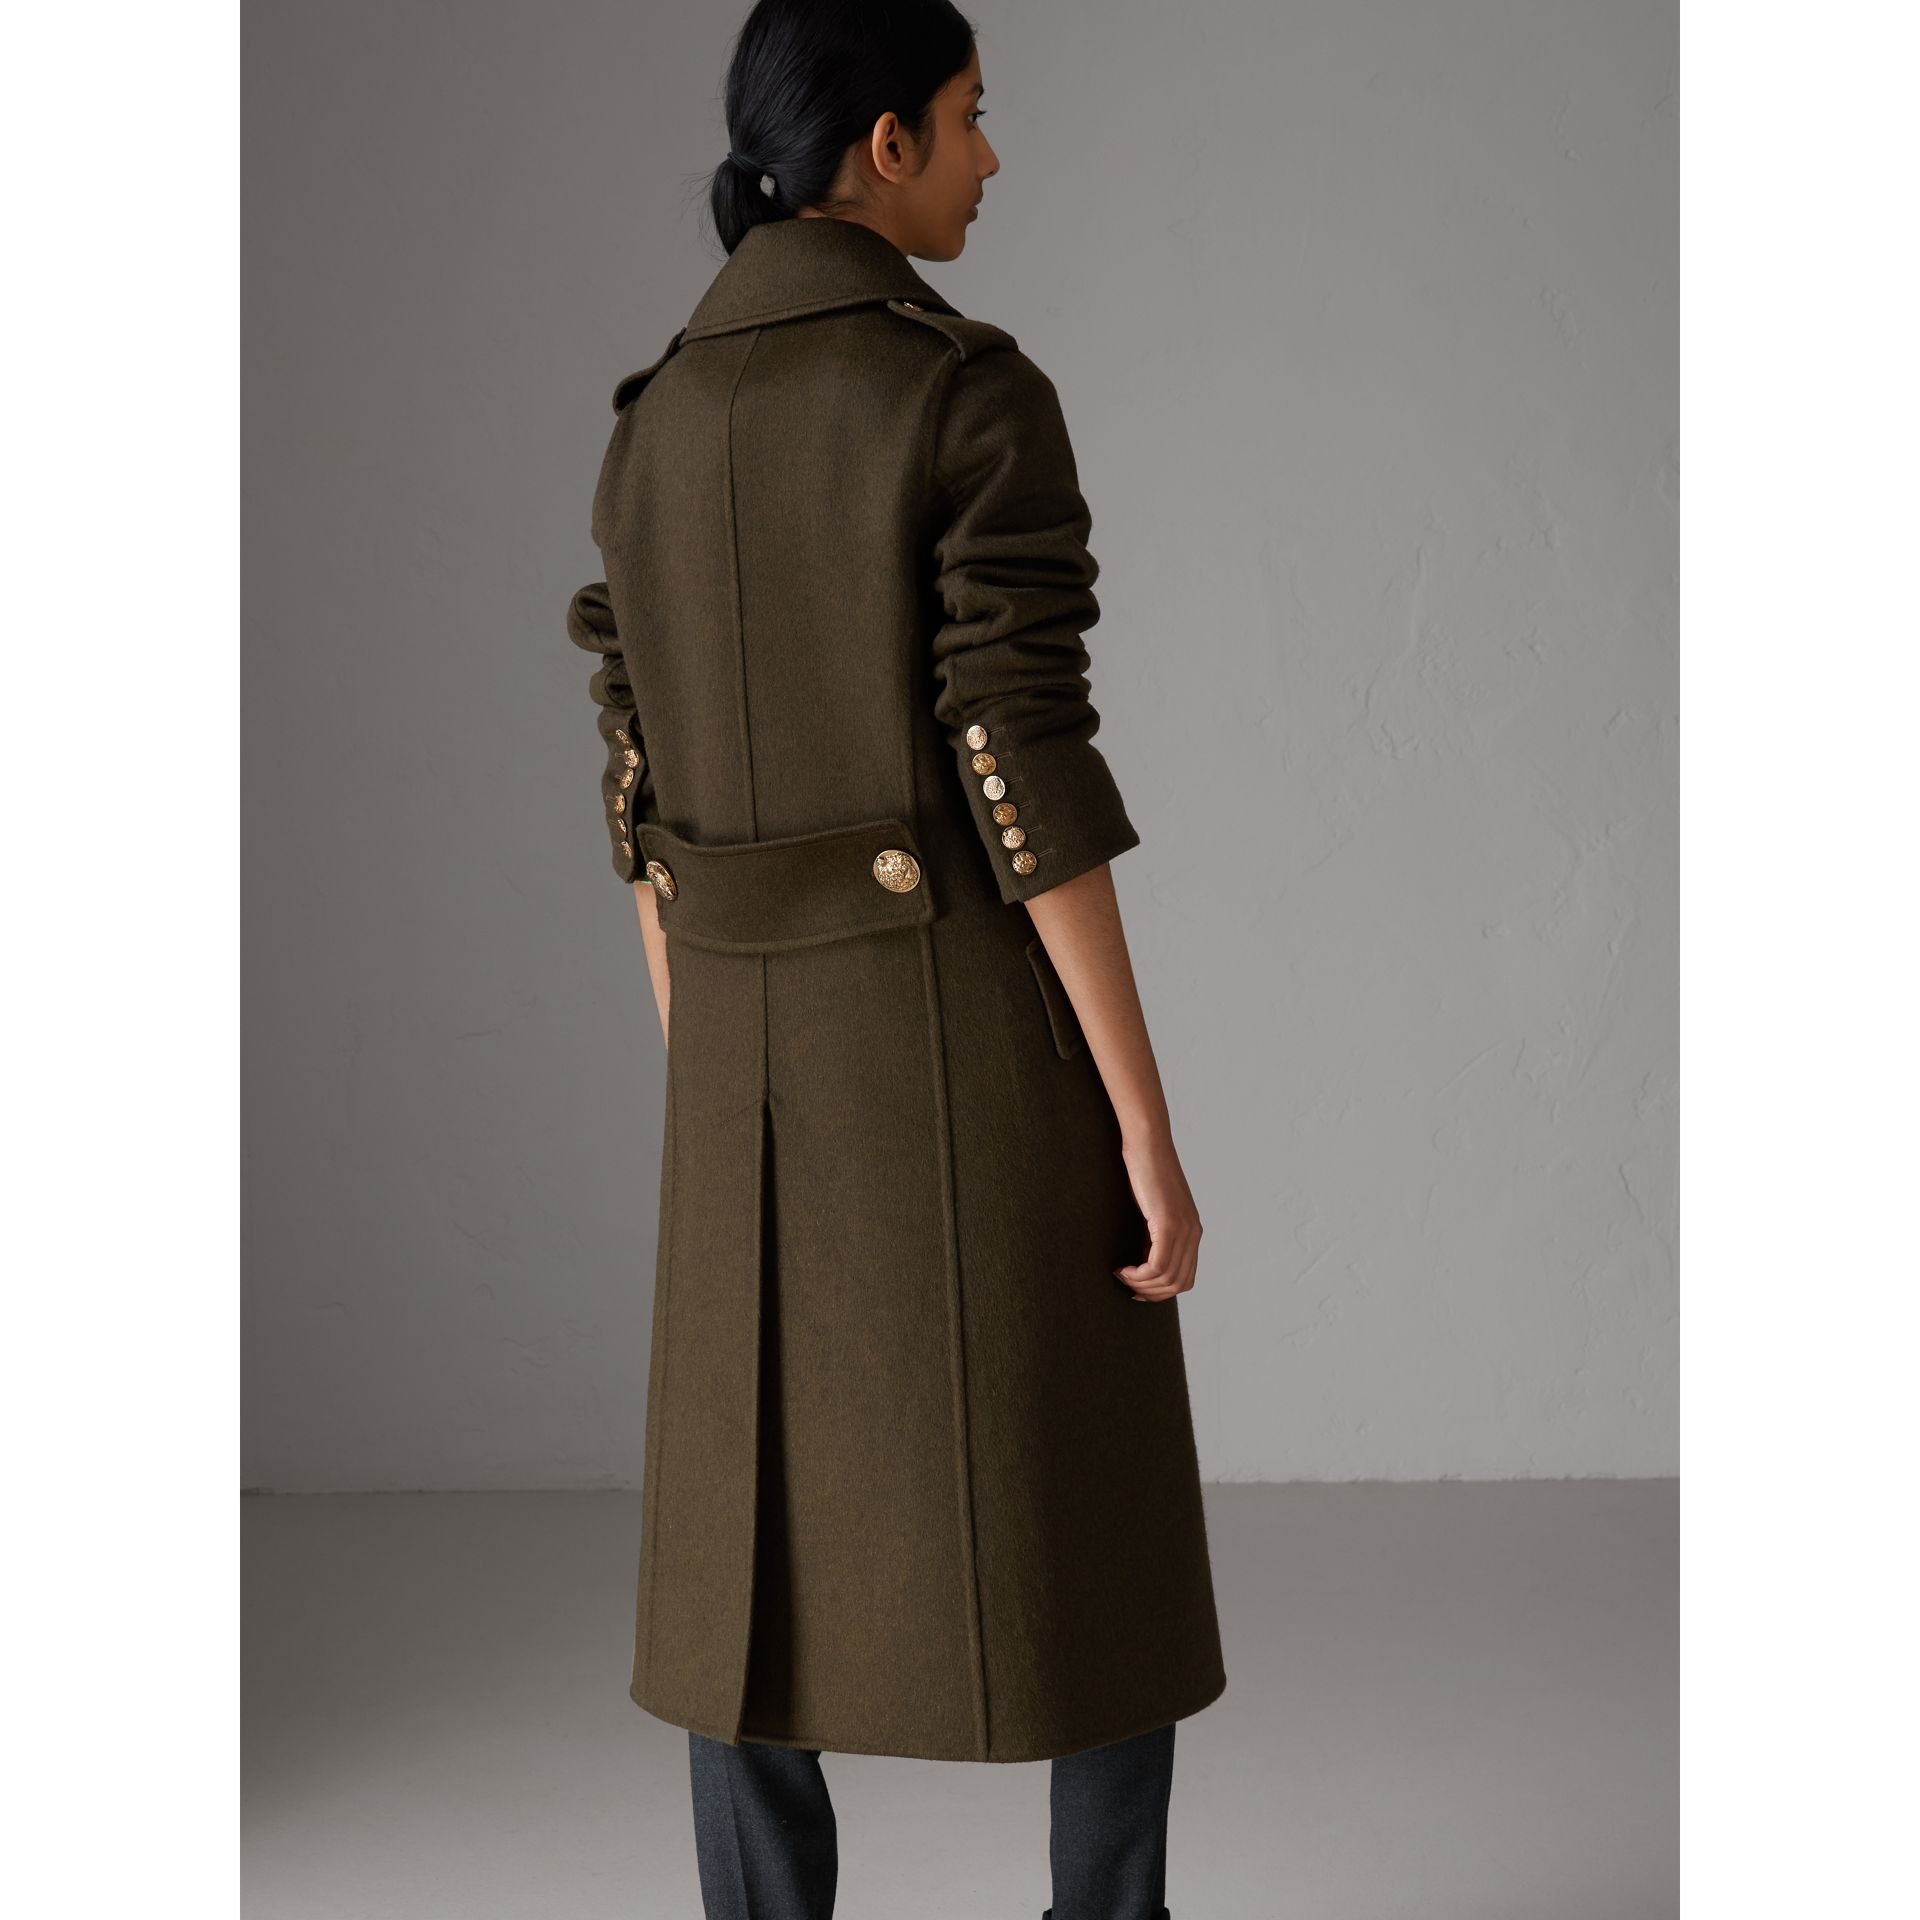 Bird Button Cashmere Wool Military Coat in Dark  Green - Women | Burberry - gallery image 2